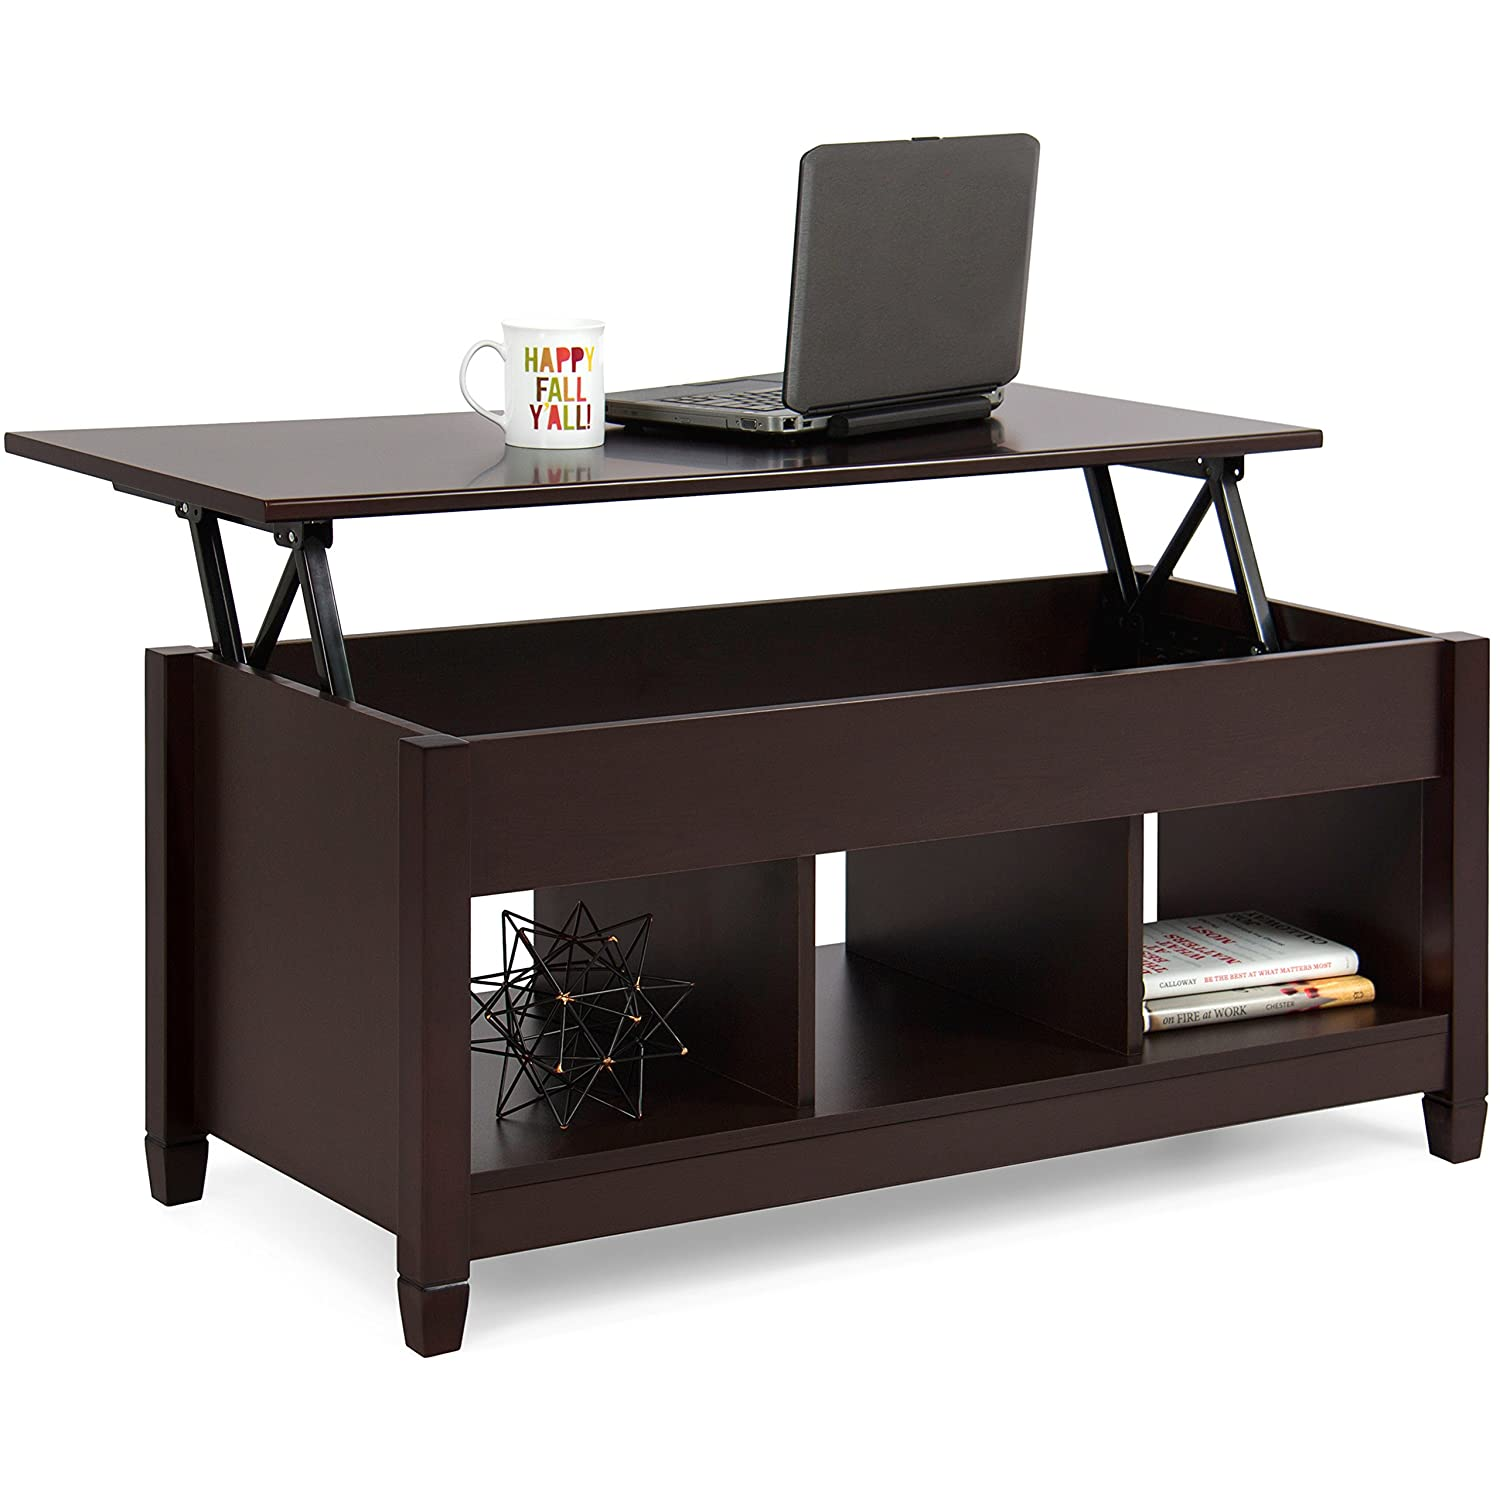 Best Choice Products Wooden Modern Multifunctional Coffee Dining Table for Living Room, Décor, Display with Hidden Storage and Lift Tabletop, Espresso